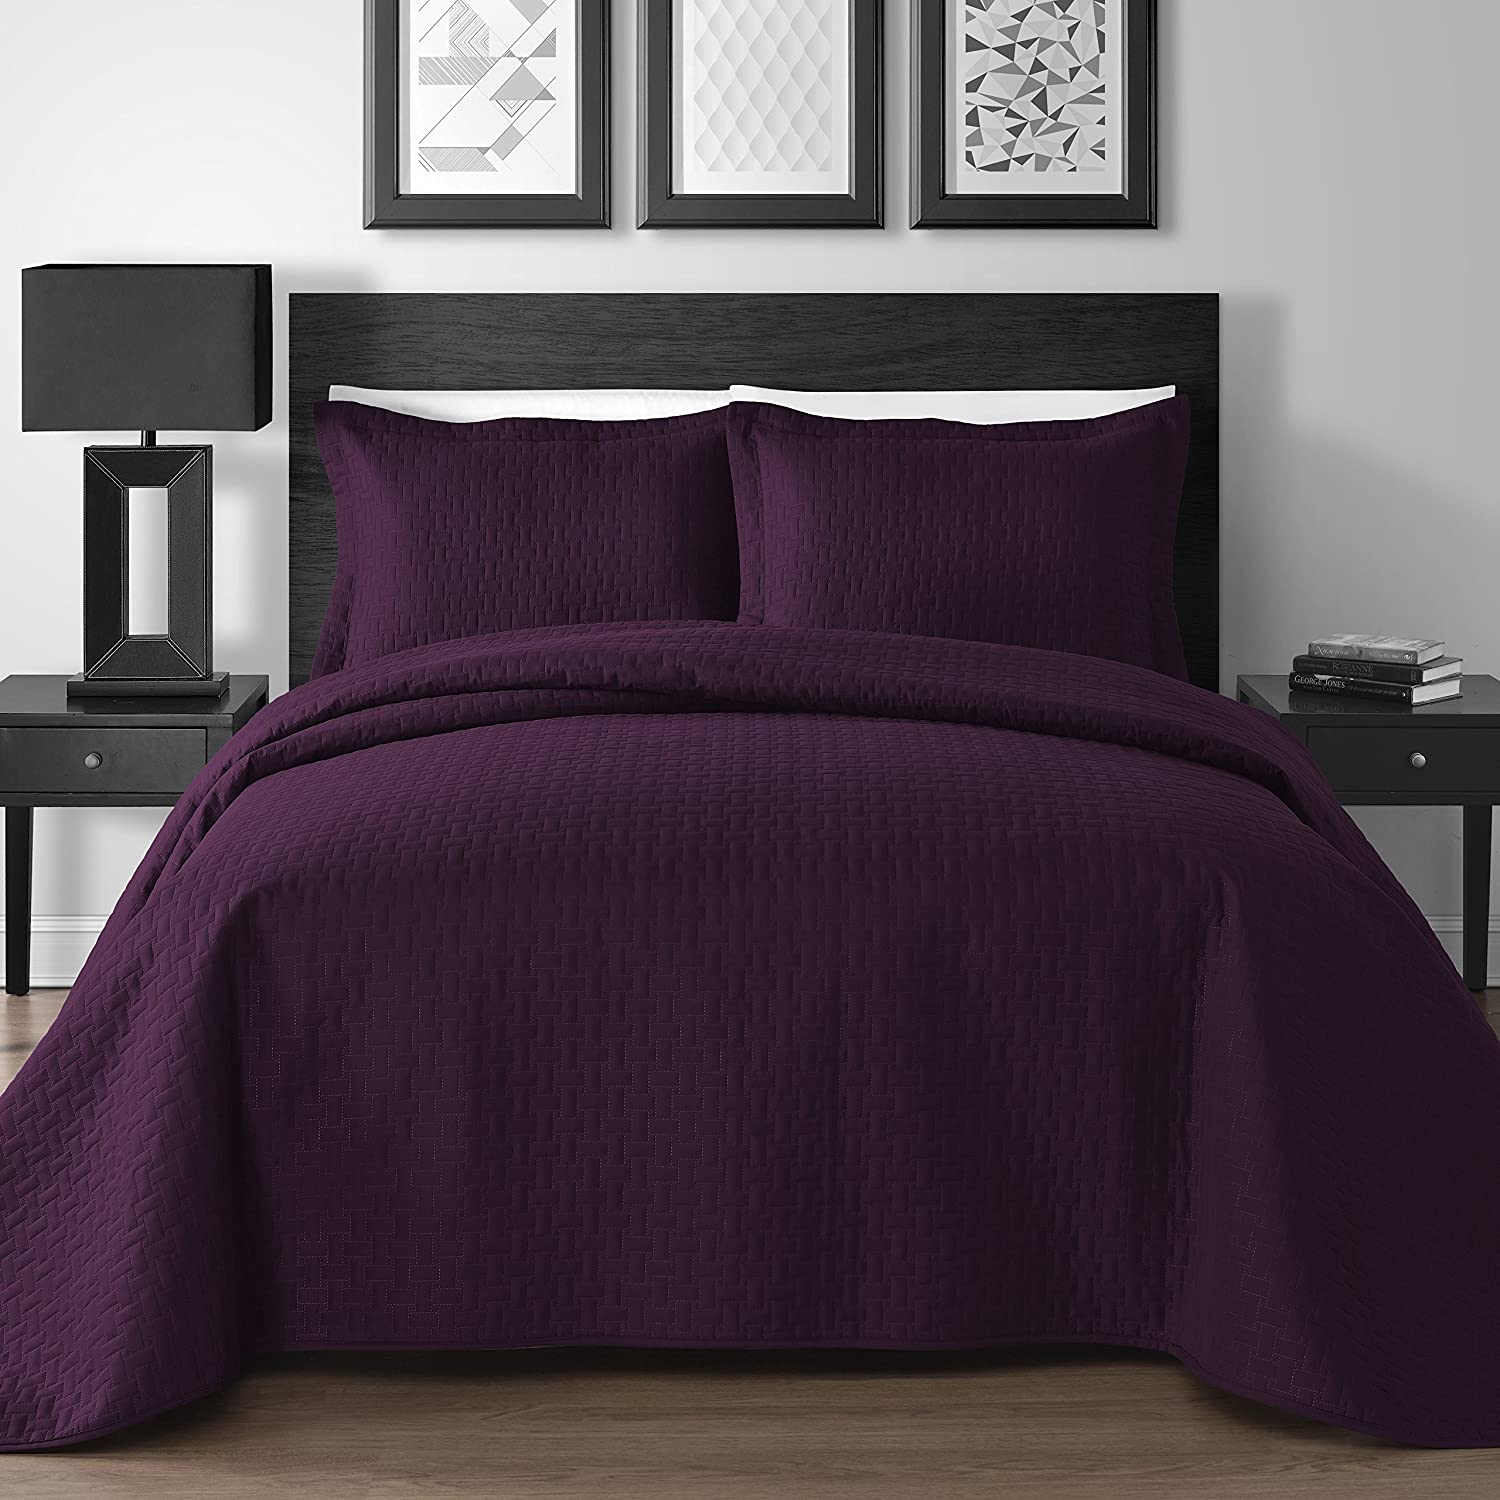 (King/Cali King, Plum) Extra Lightweight 3 Piece King & Queen Home Thermosonic Embossed Frame Coverlet Bedspread Set (King/Cal King, Plum) B01FN84WJS King/Cali King|プラム プラム King/Cali King